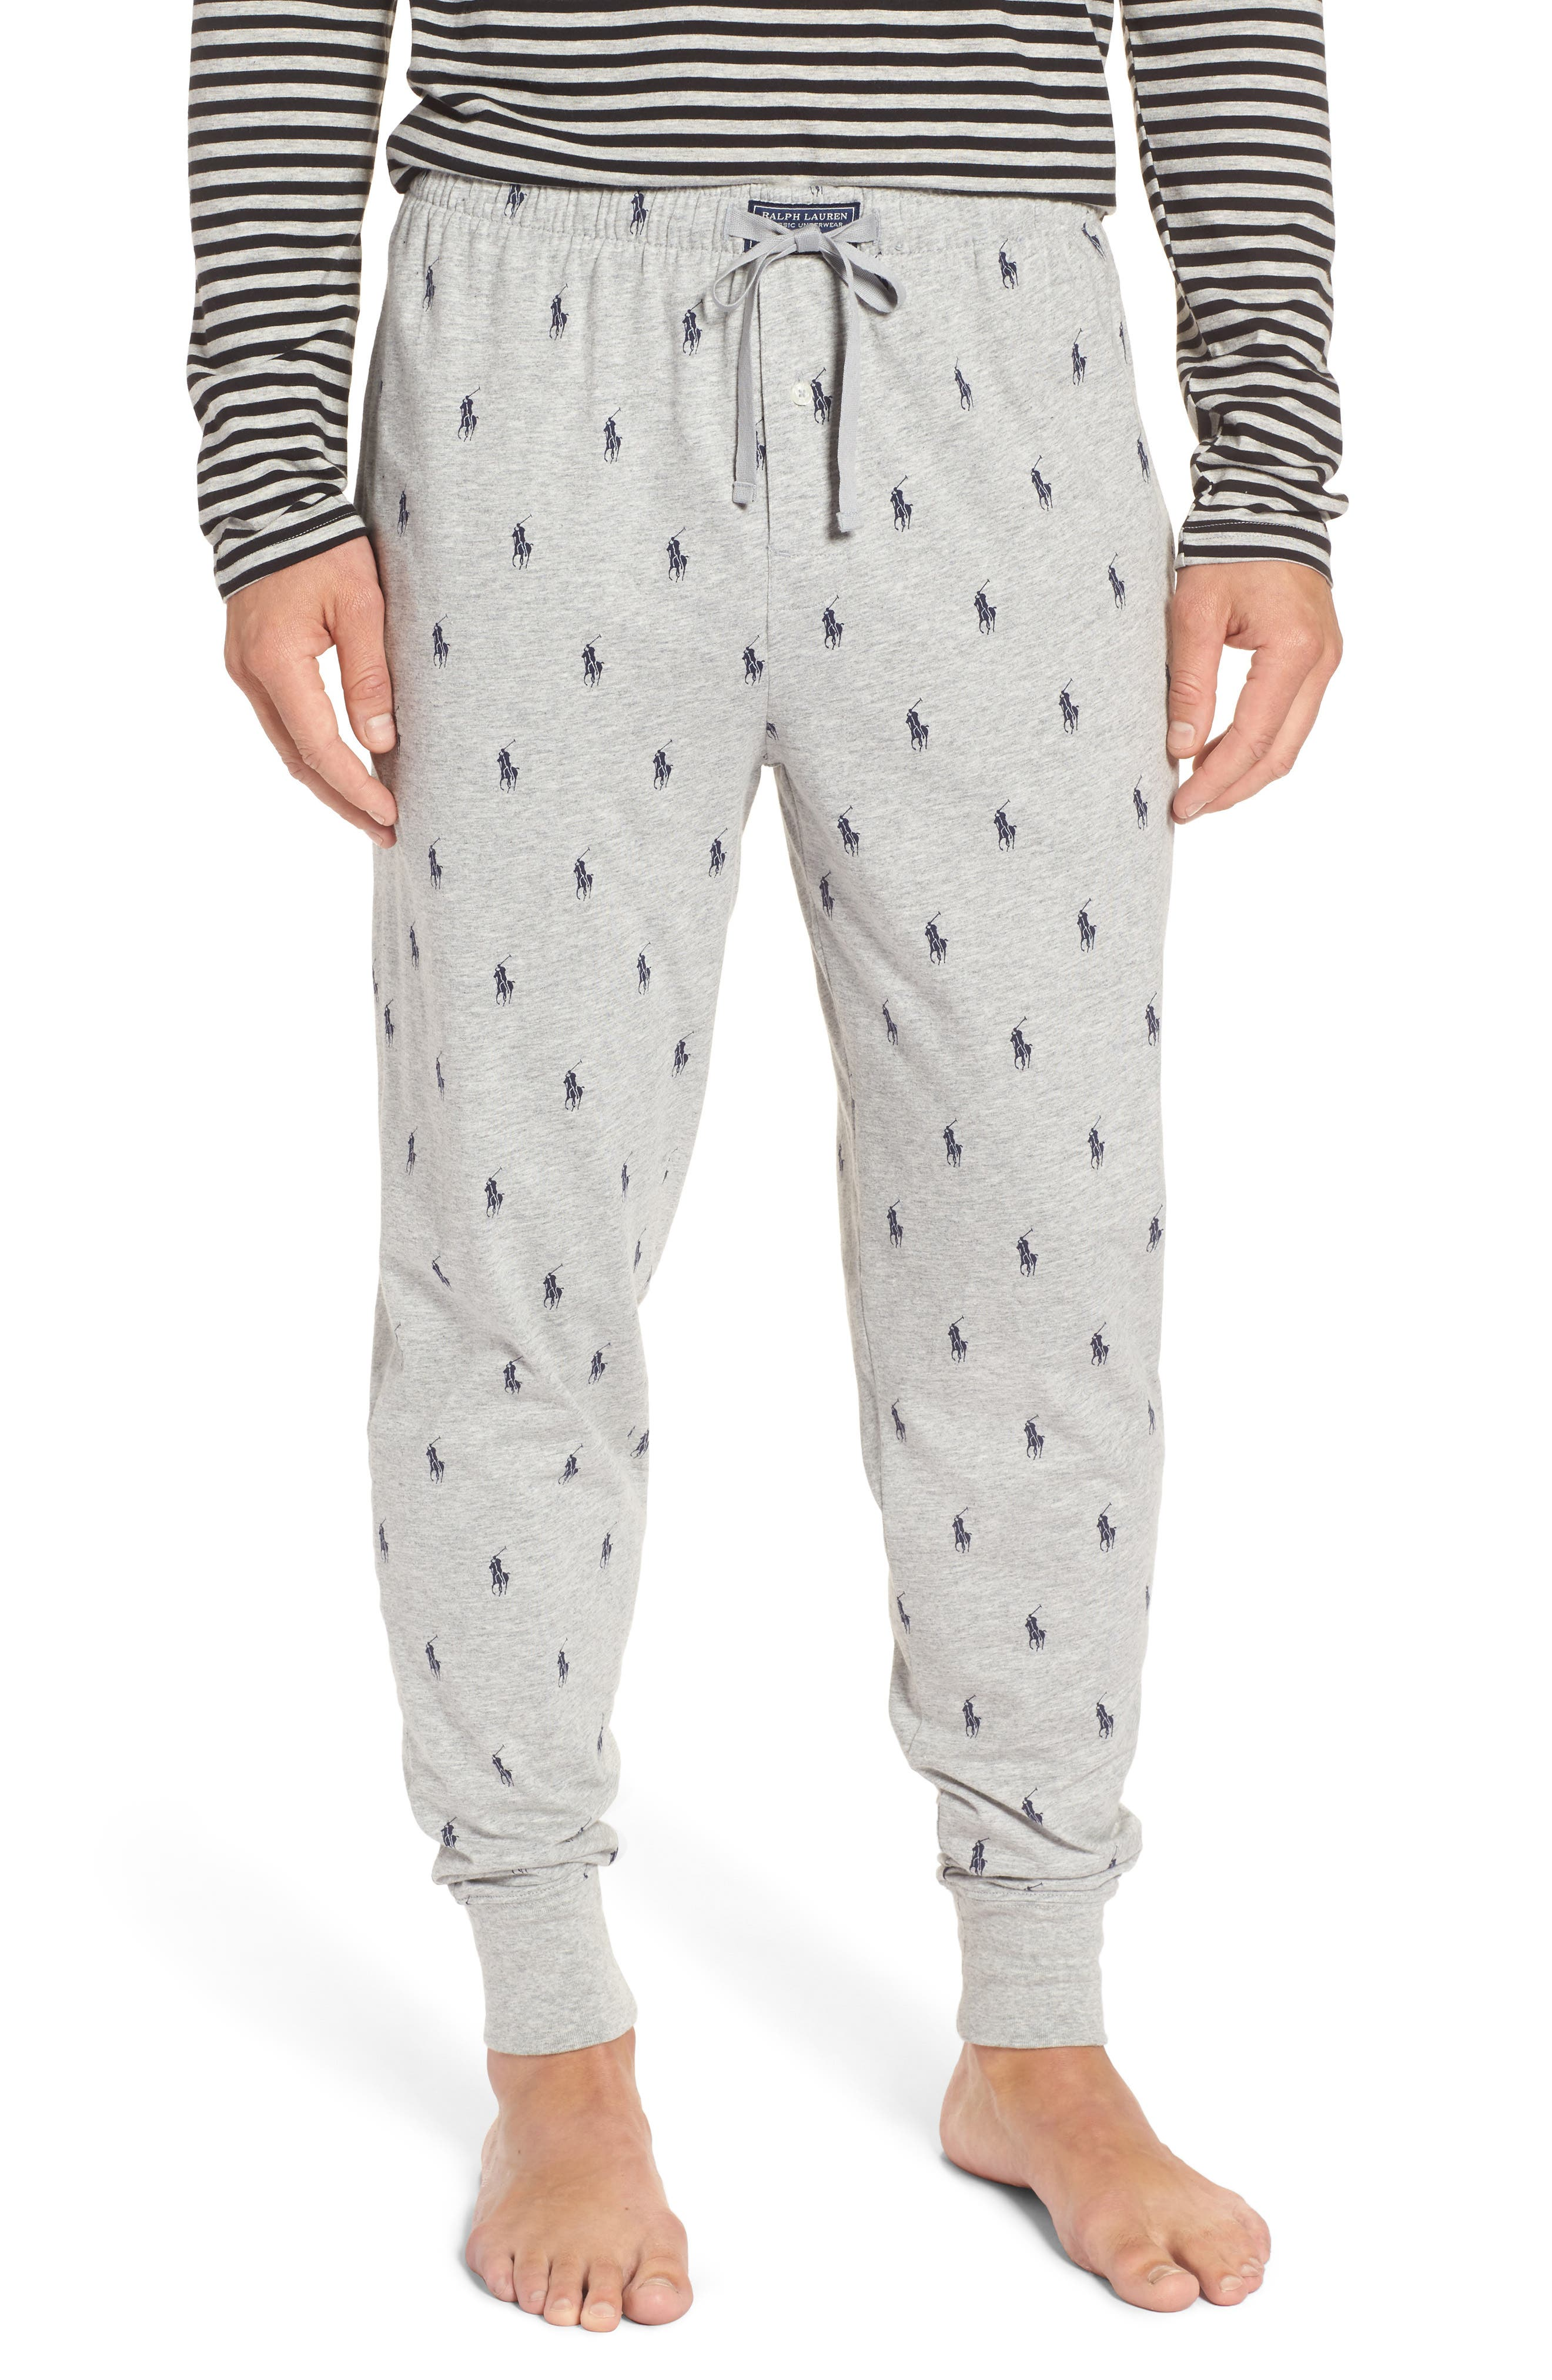 Alternate Image 1 Selected - Polo Ralph Lauren Pony Print Lounge Pants